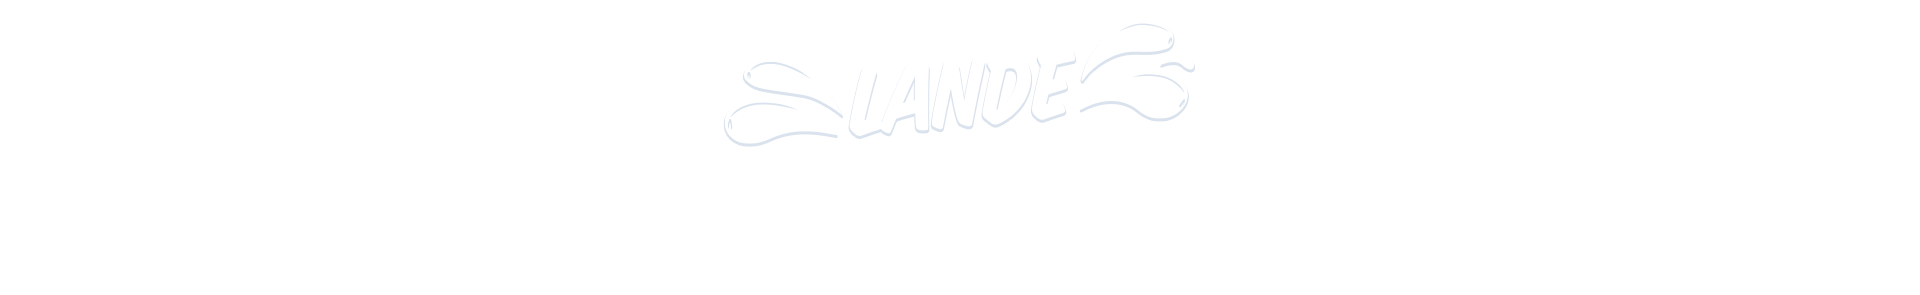 XXXXX-CS_Website_Header_Image_Tiles_Lande_1920-x-295px